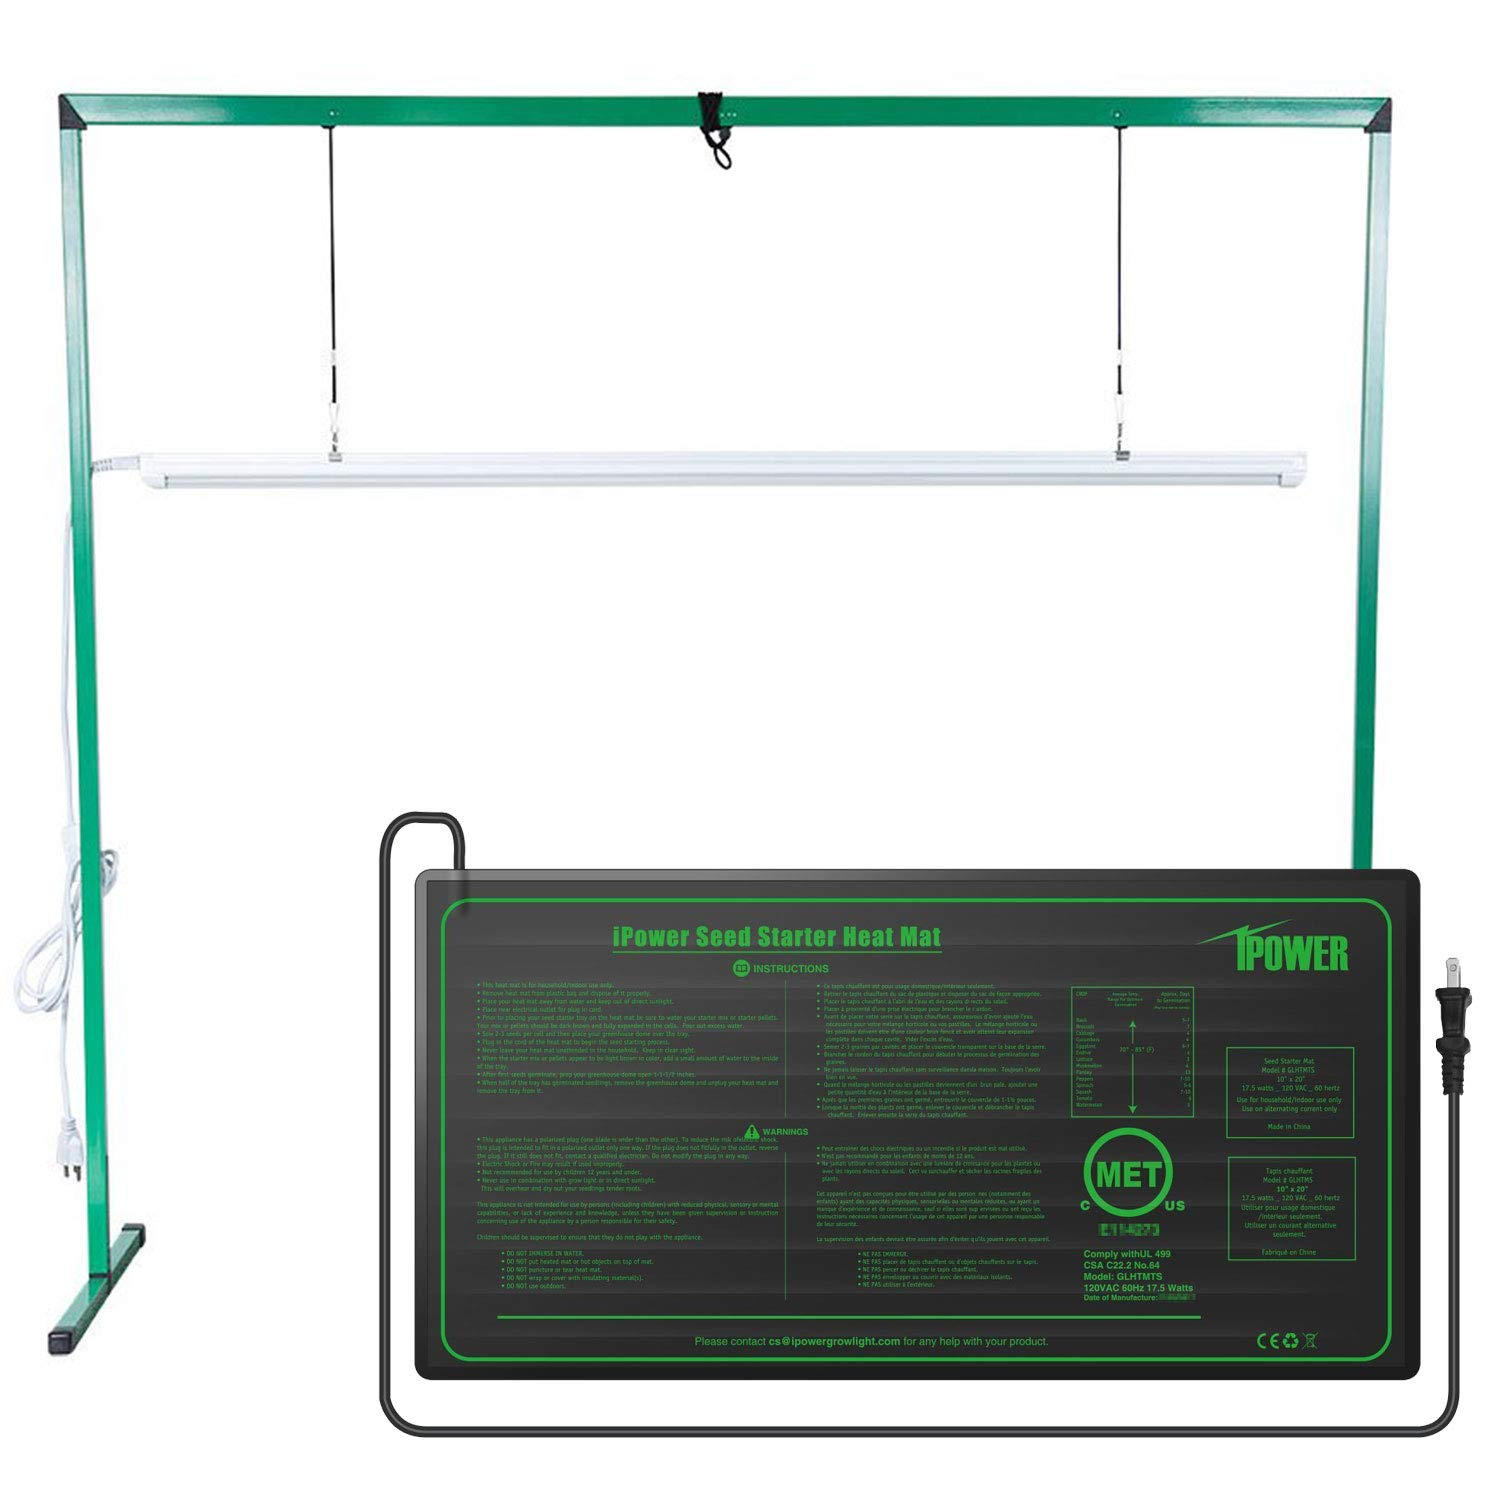 iPower GLSTNDLED4FHTMTS 36W 4 Feet LED Grow Light Stand Rack and 10'' x 20.5'' Hydroponic Heat Mat Combo Set for Seed Germination, Green